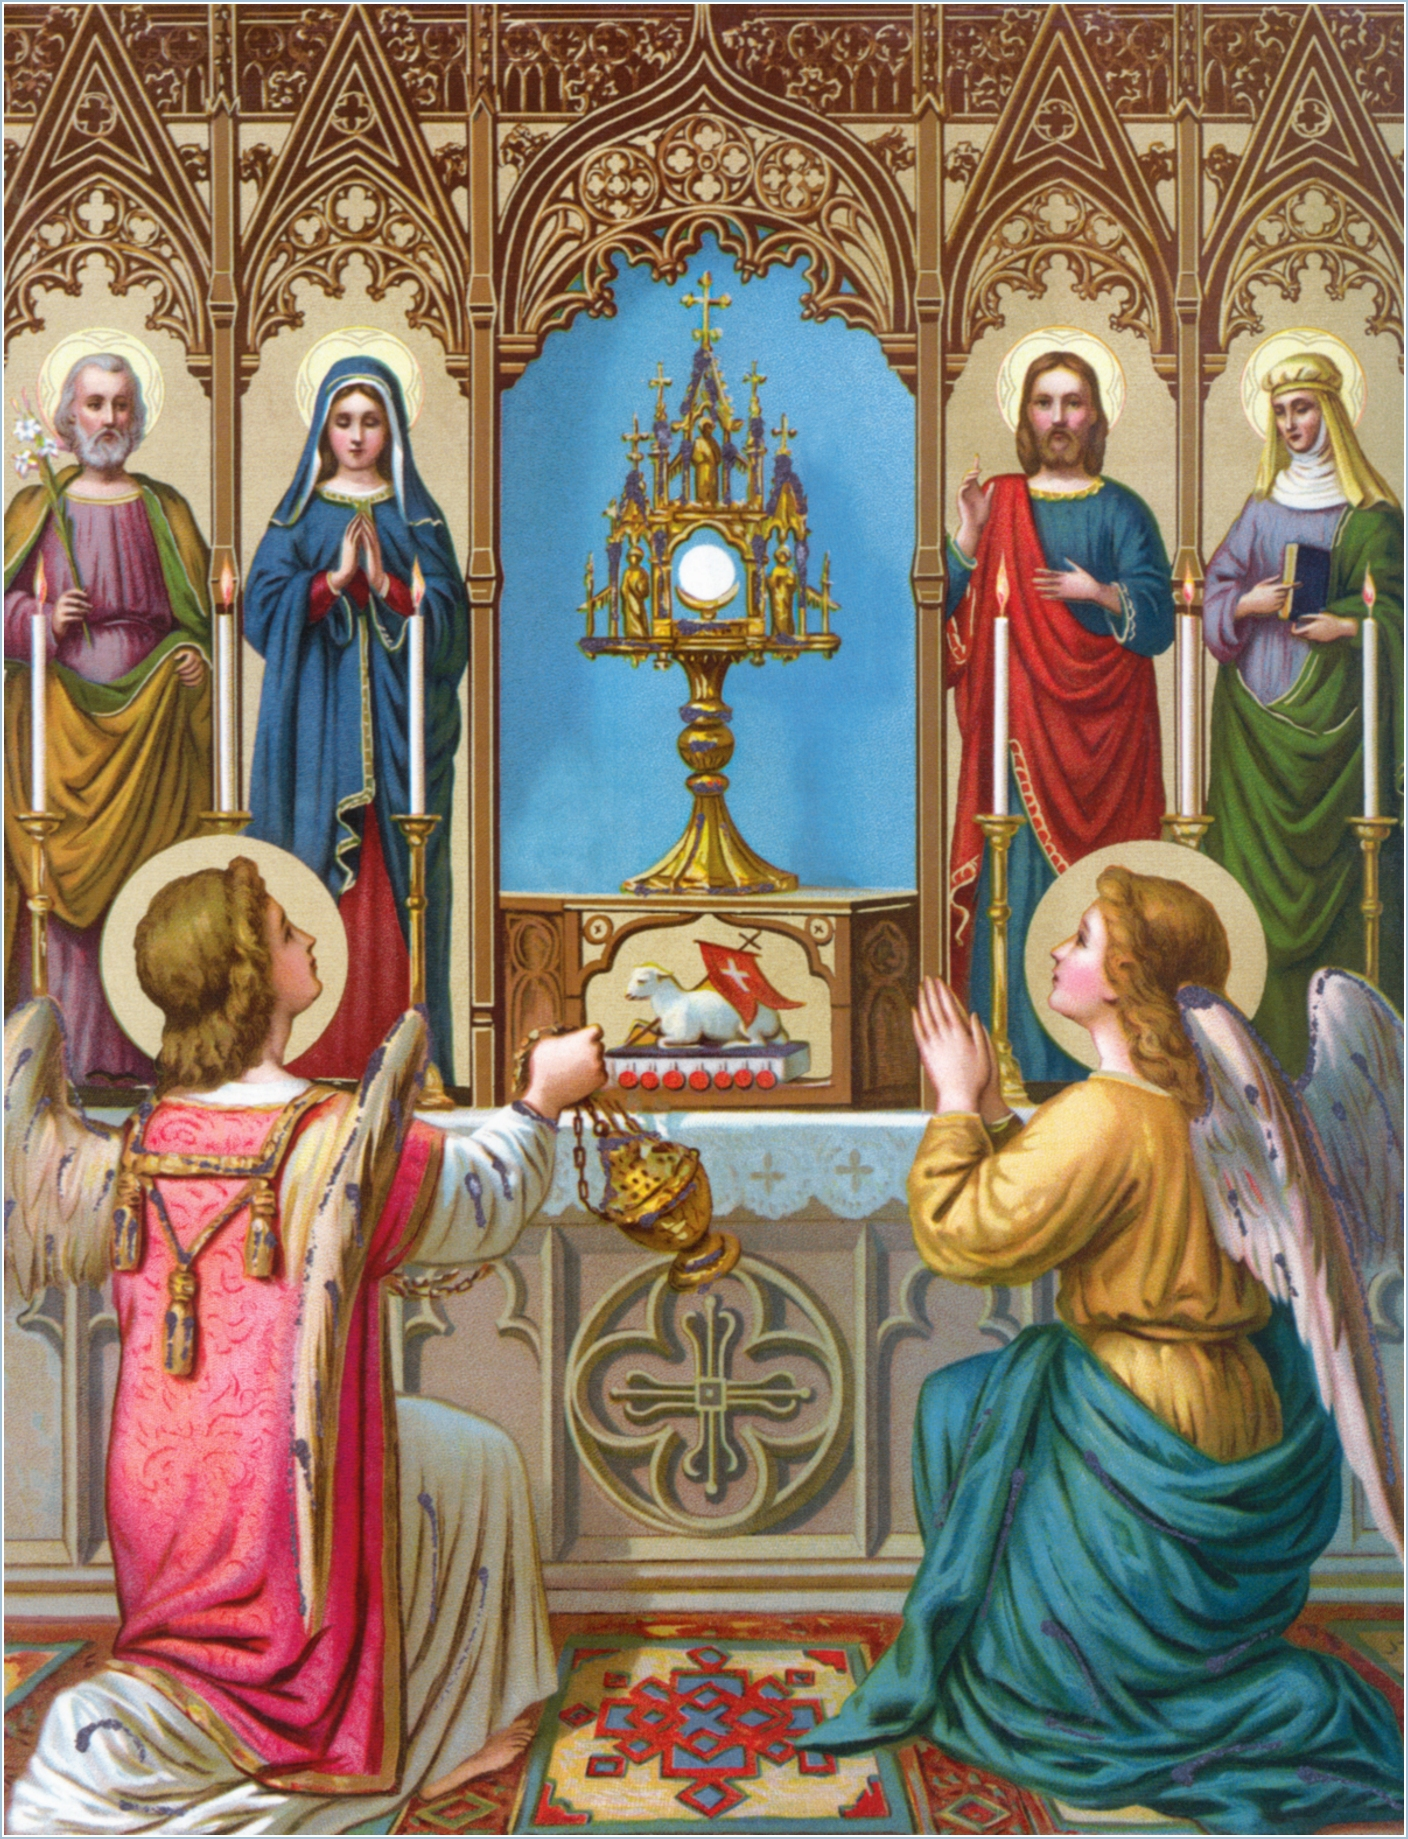 SPECIAL PRAYERS: THE HOLY EUCHARIST